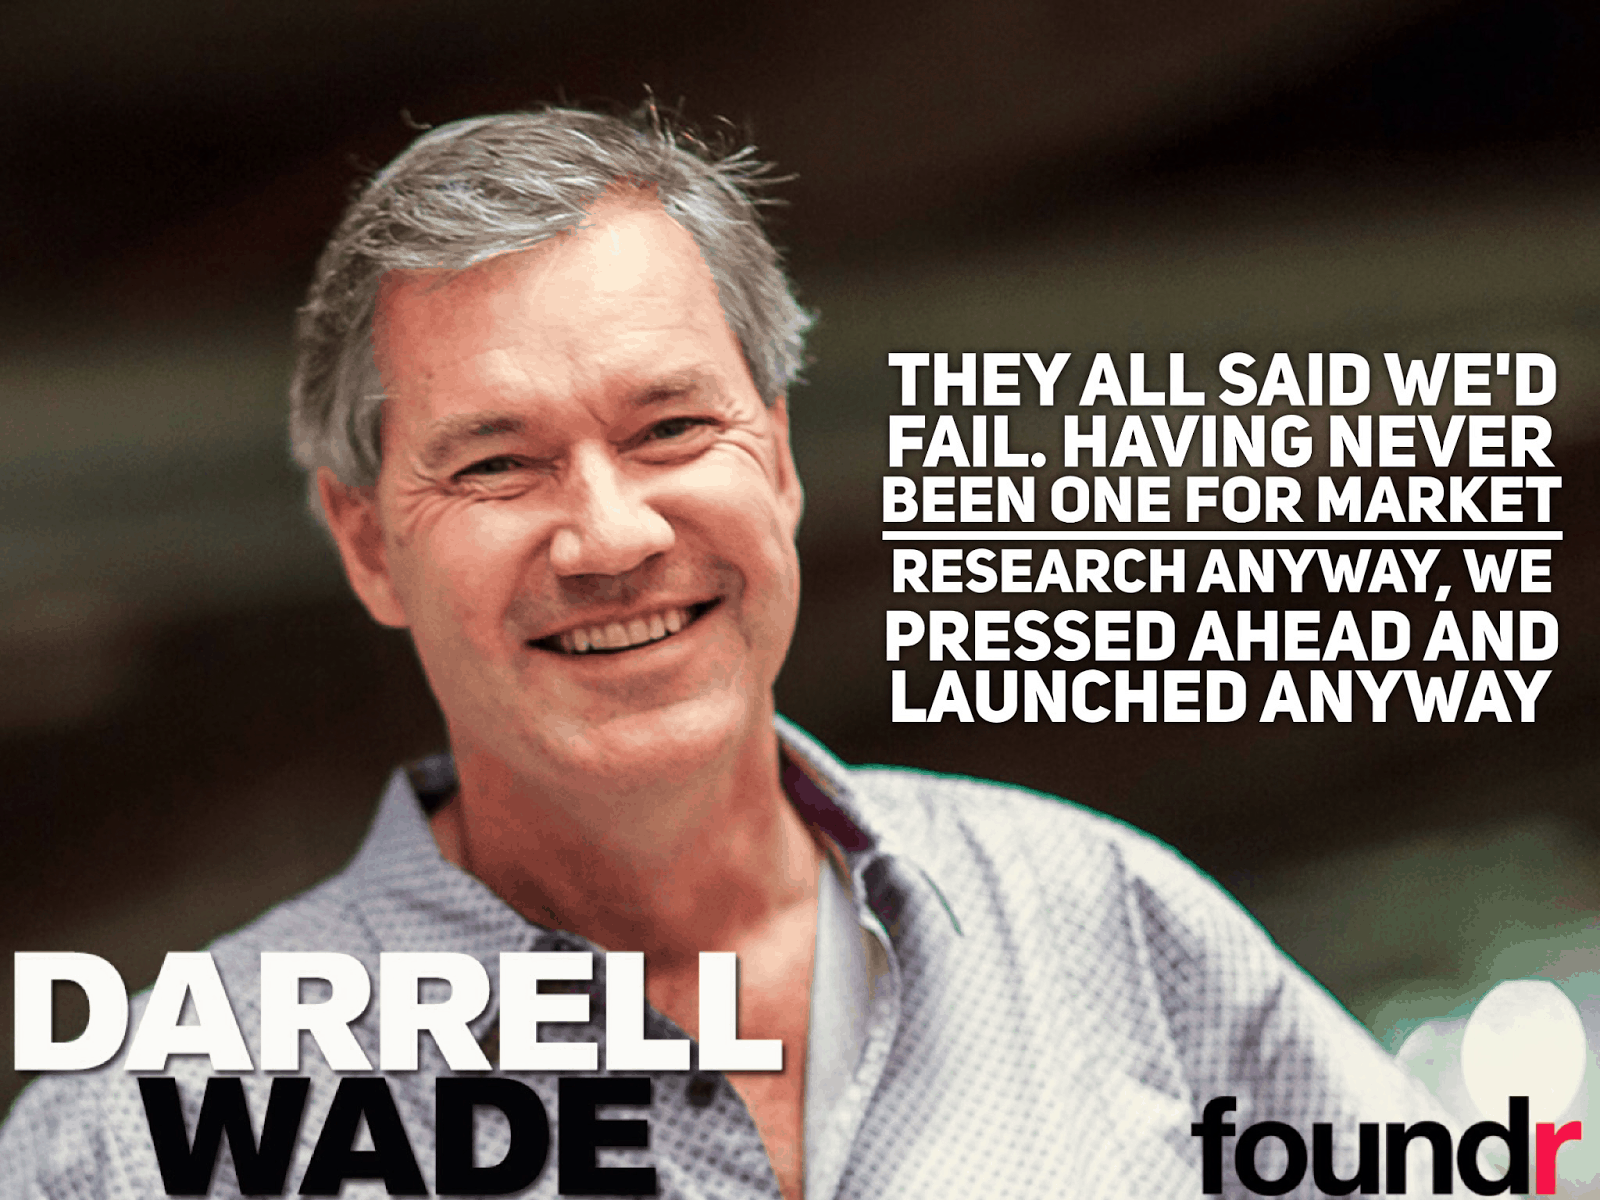 how to start a startup darell wade